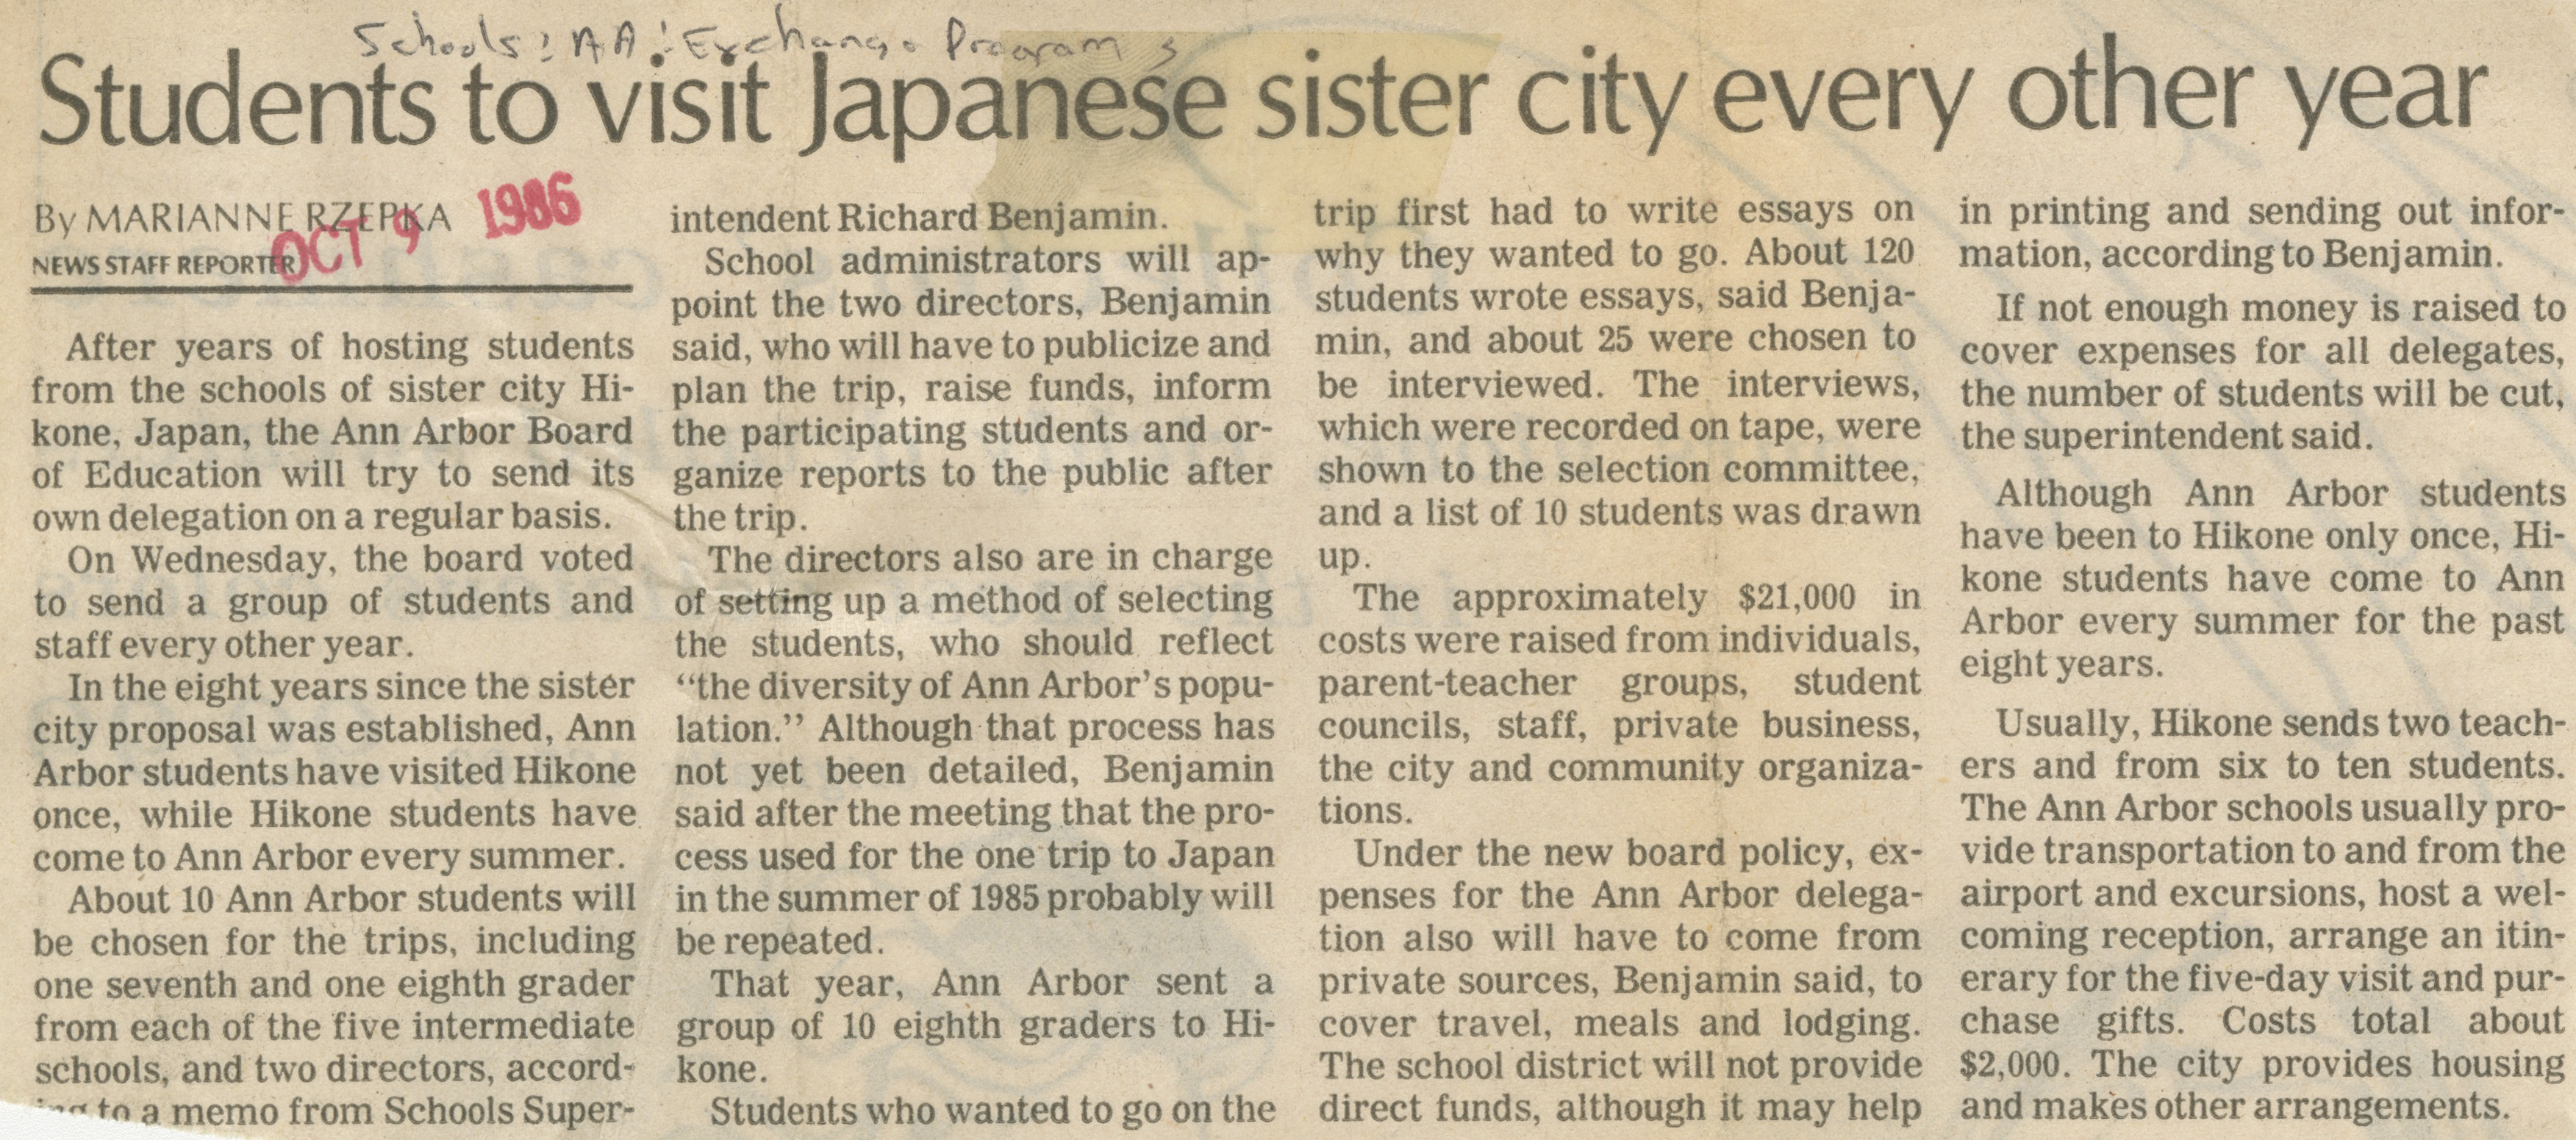 Student To Visit Japanese Sister City Every Other Year image